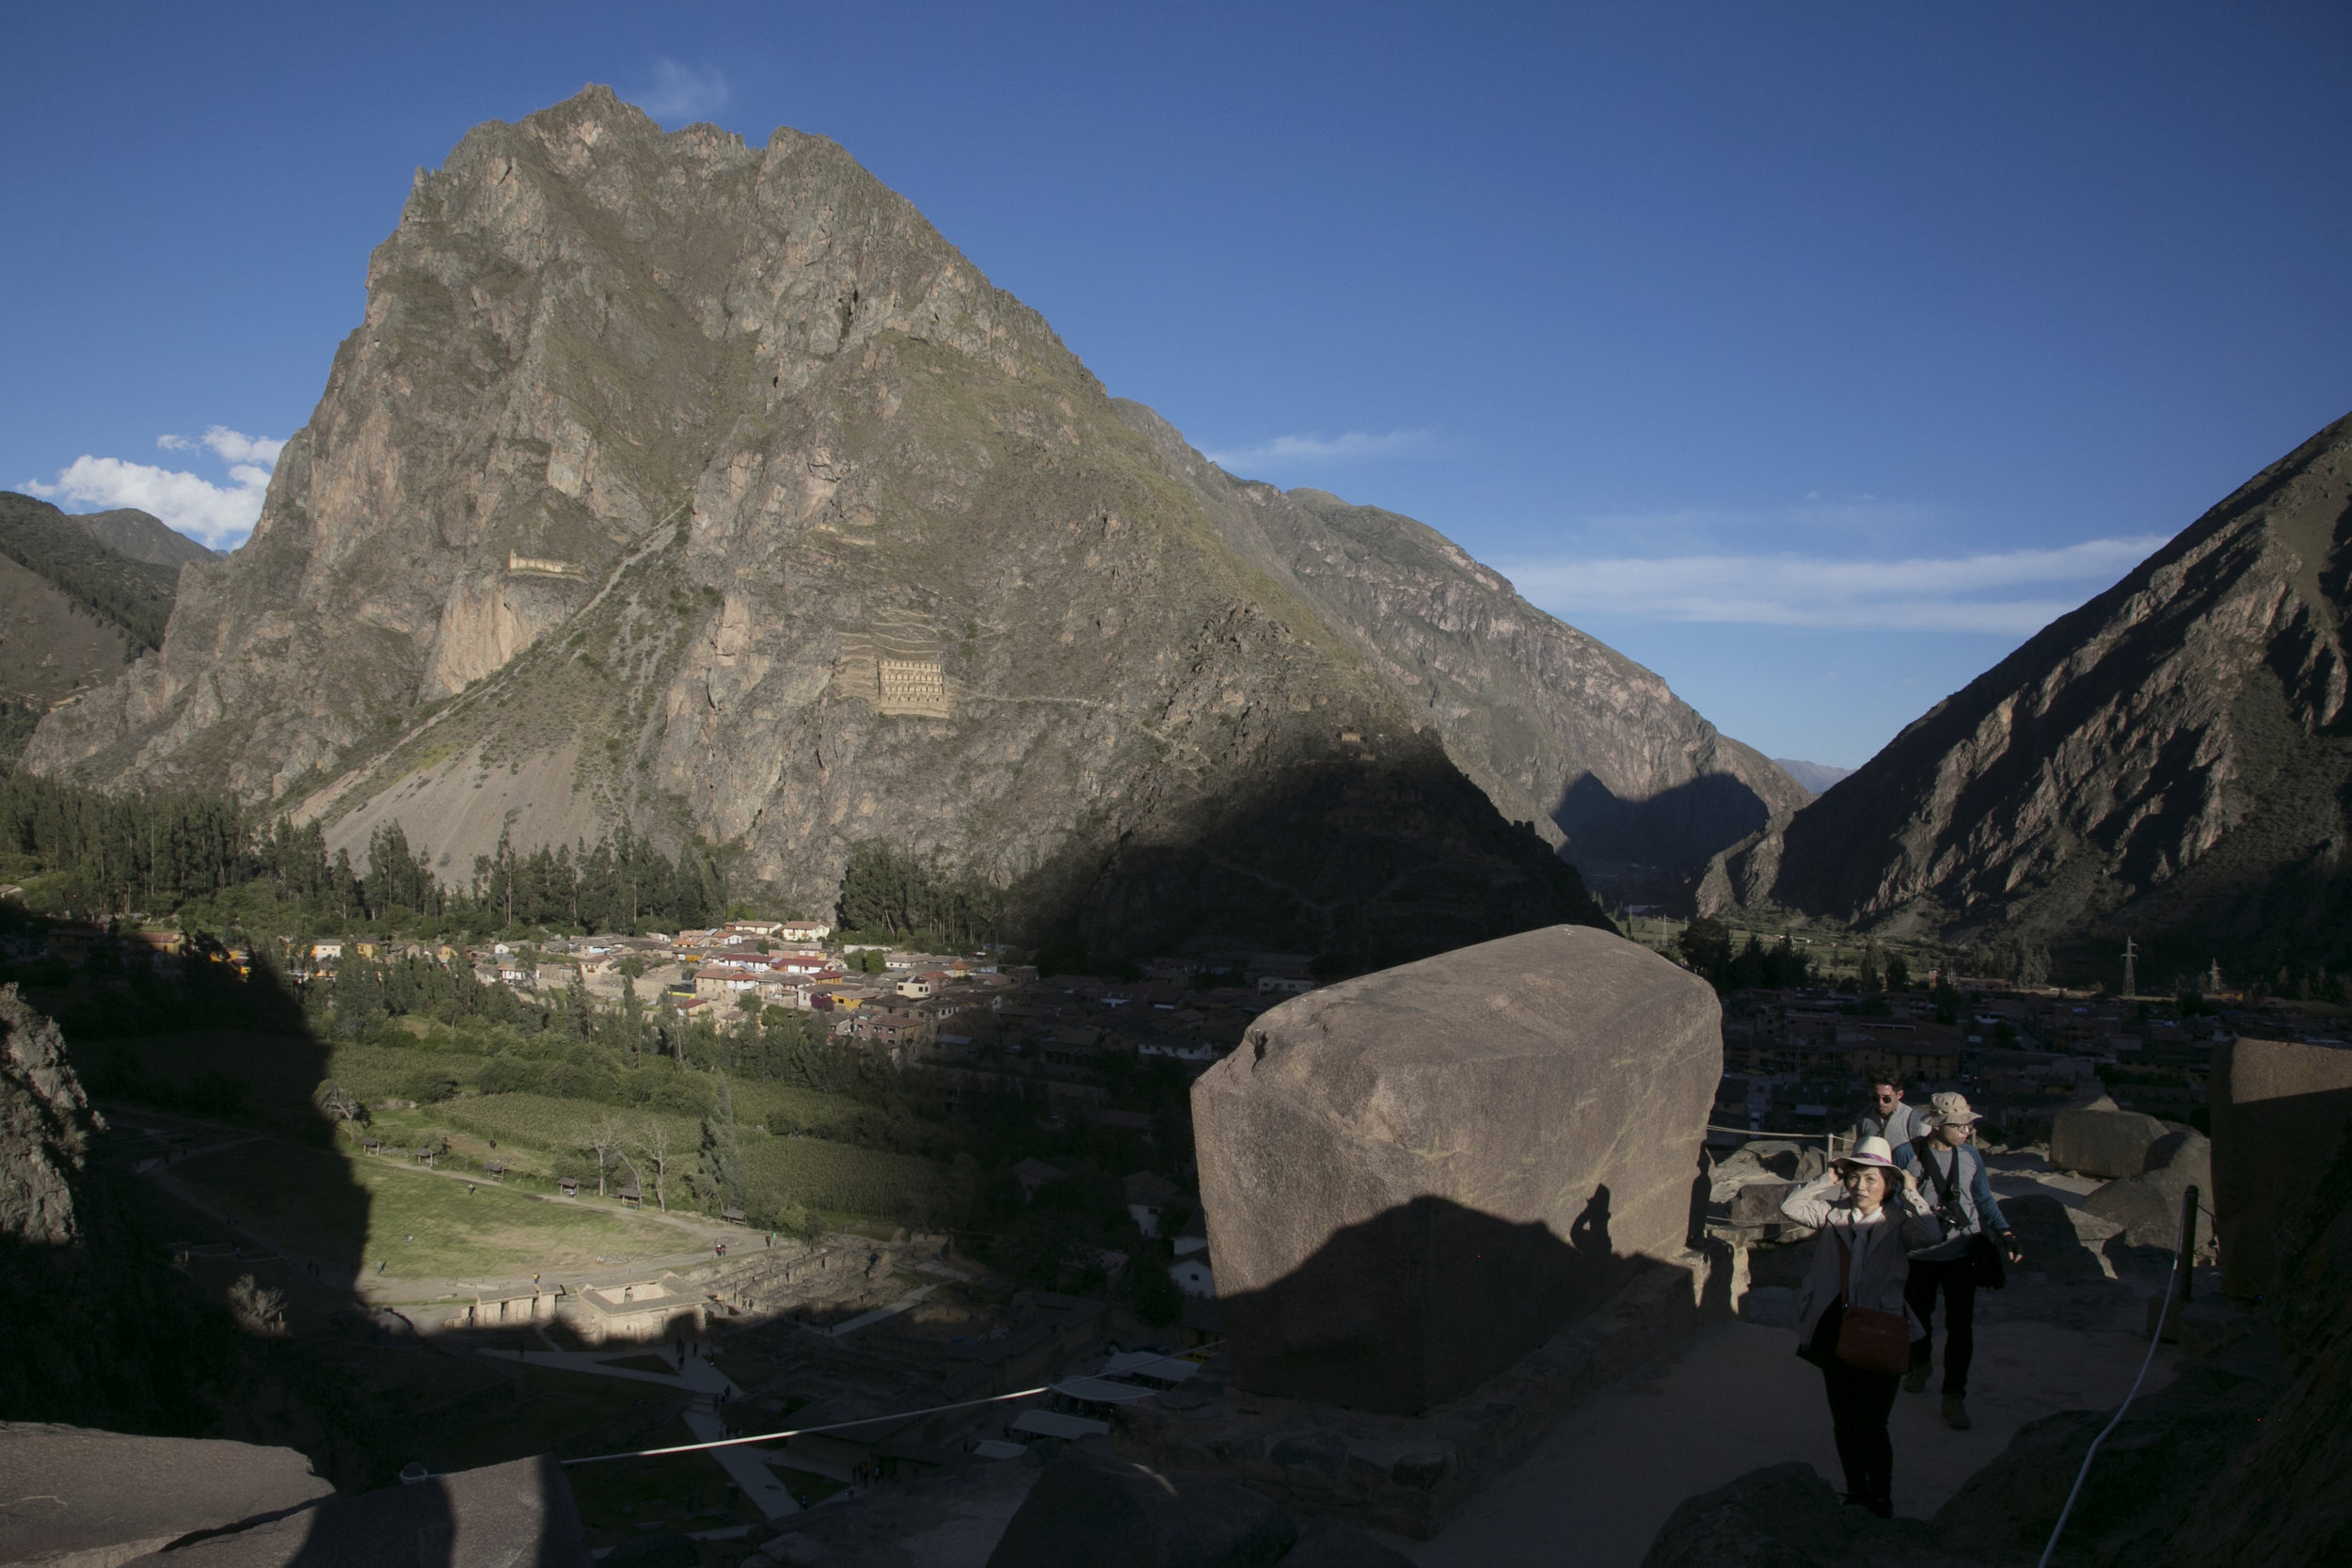 Tourists walk through the Inca terraces of Ollantaytambo, looking across to ancient granaries on the hill.  The Inca won a victory against the Spanish by fortifying the town and flooding the valley.